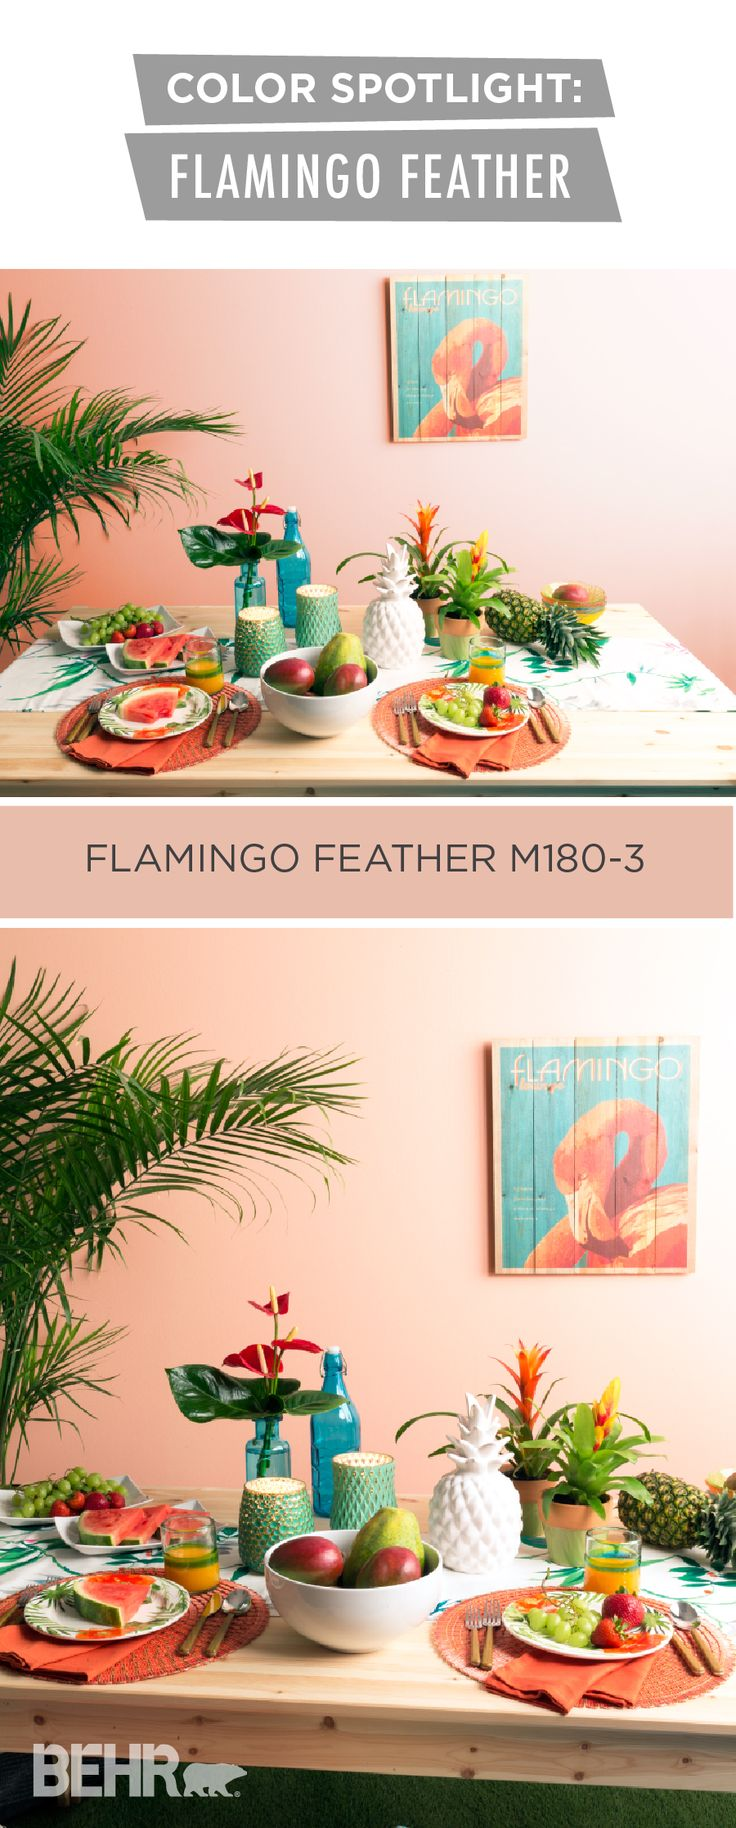 580 best new home inspiration images on pinterest autumn for Flamingo feather paint